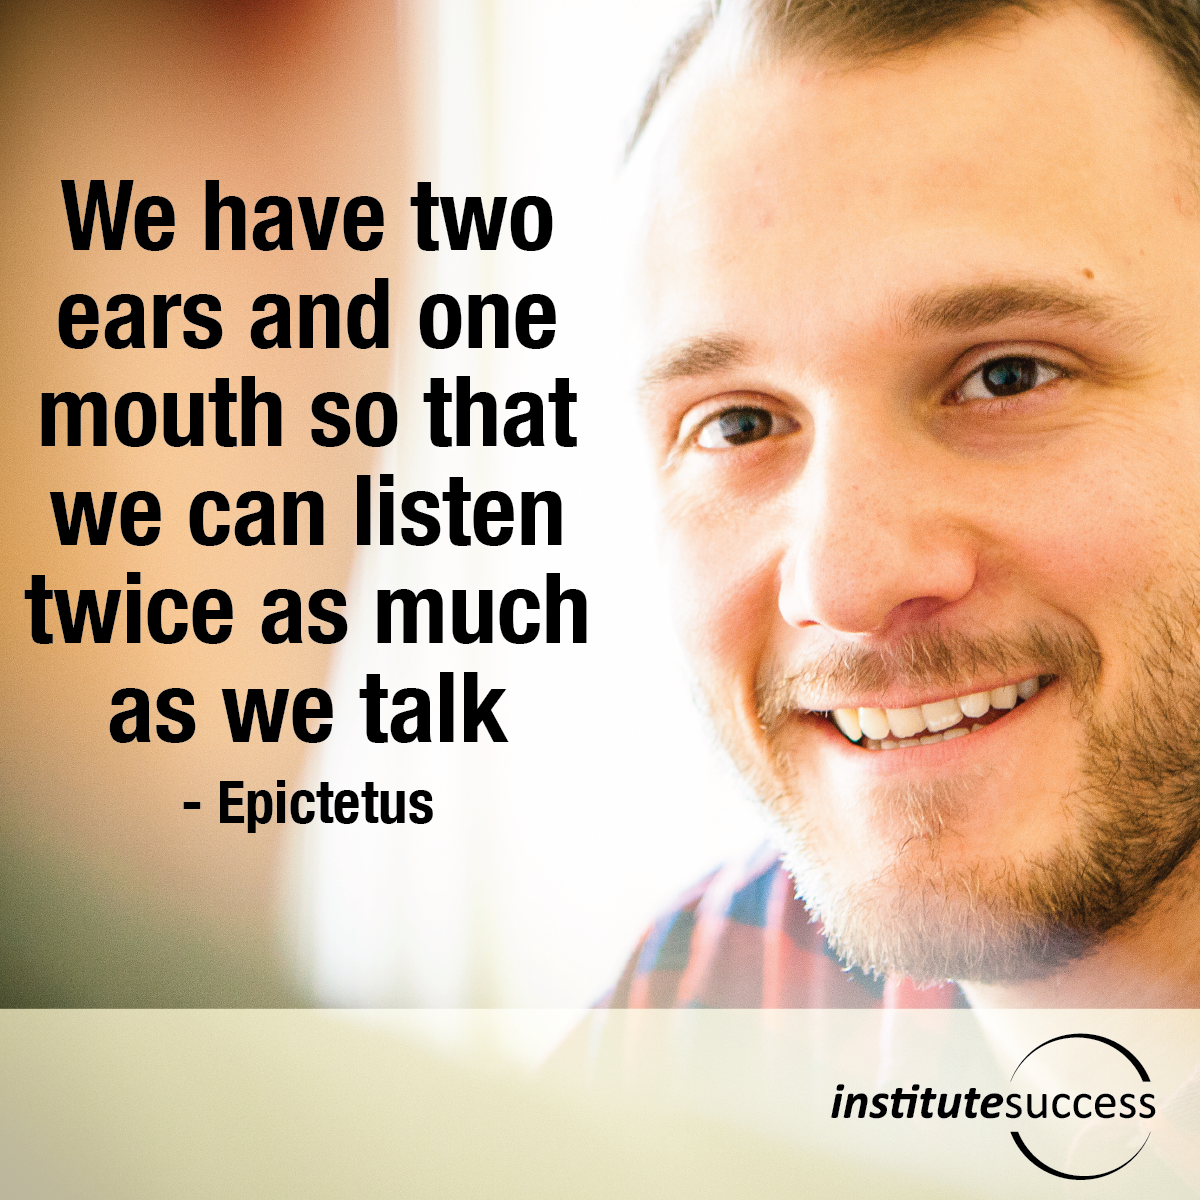 We have two ears and one mouth so that we can listen twice as much as we talk – Epictetus